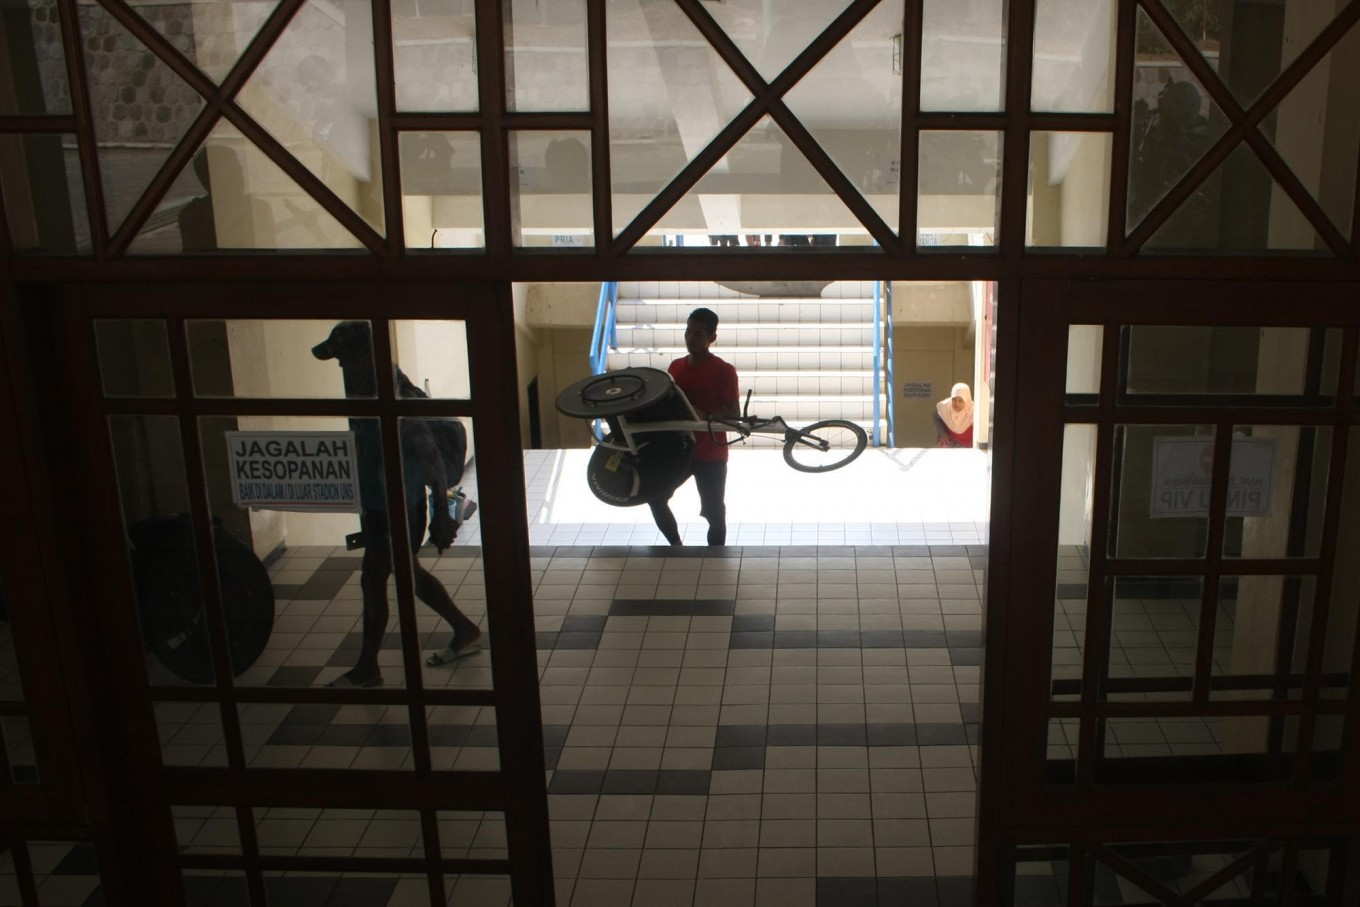 A trainer carries a racing wheelchair after training exercises. JP/Maksum Nur Fauzan